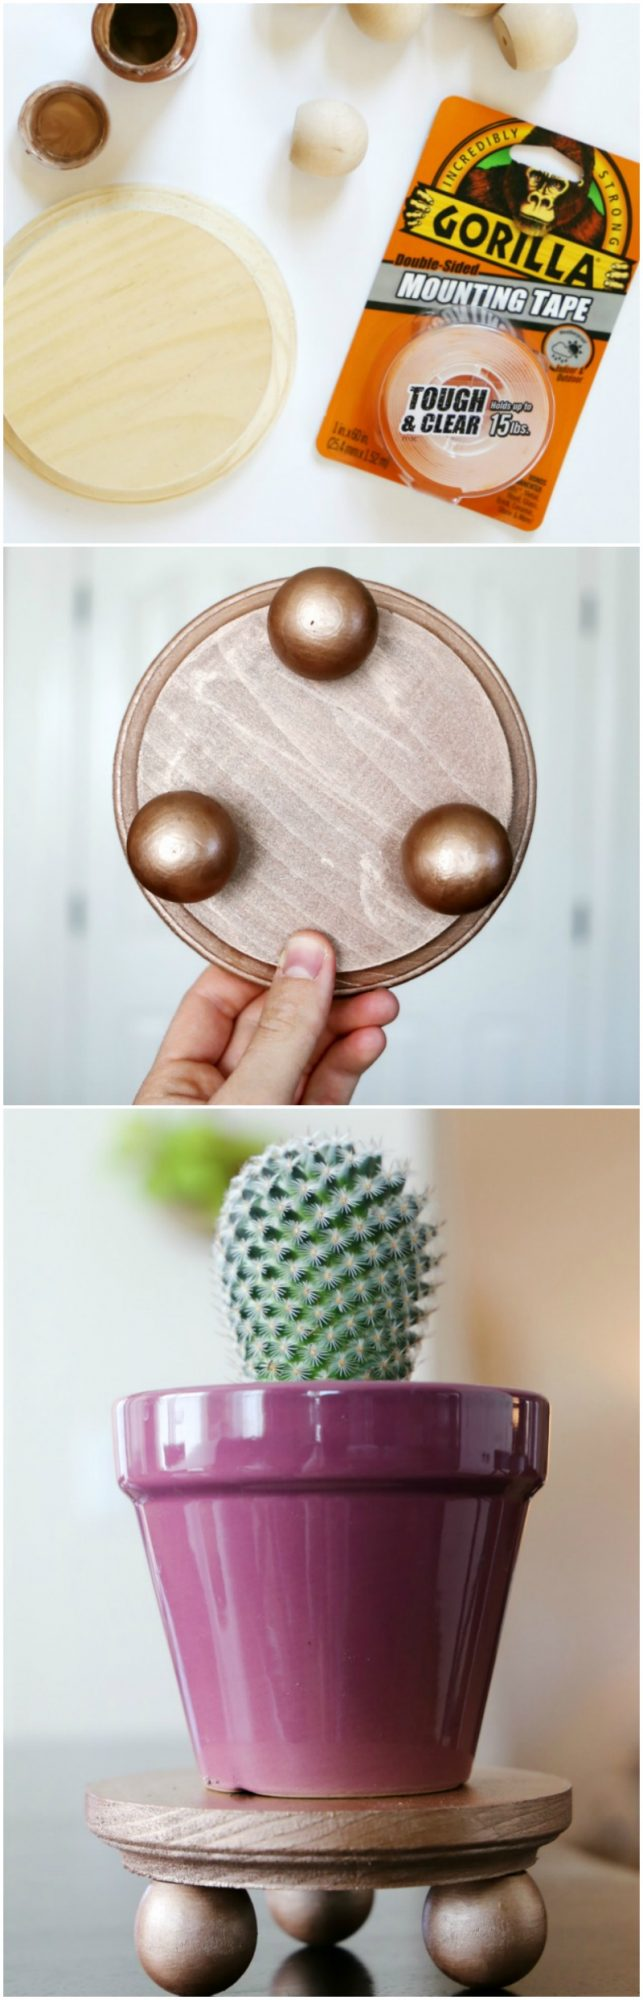 DIY Tiny Plant Stand Tutorial for Table Top Plants with Gorilla Glue: the Child at Heart blog